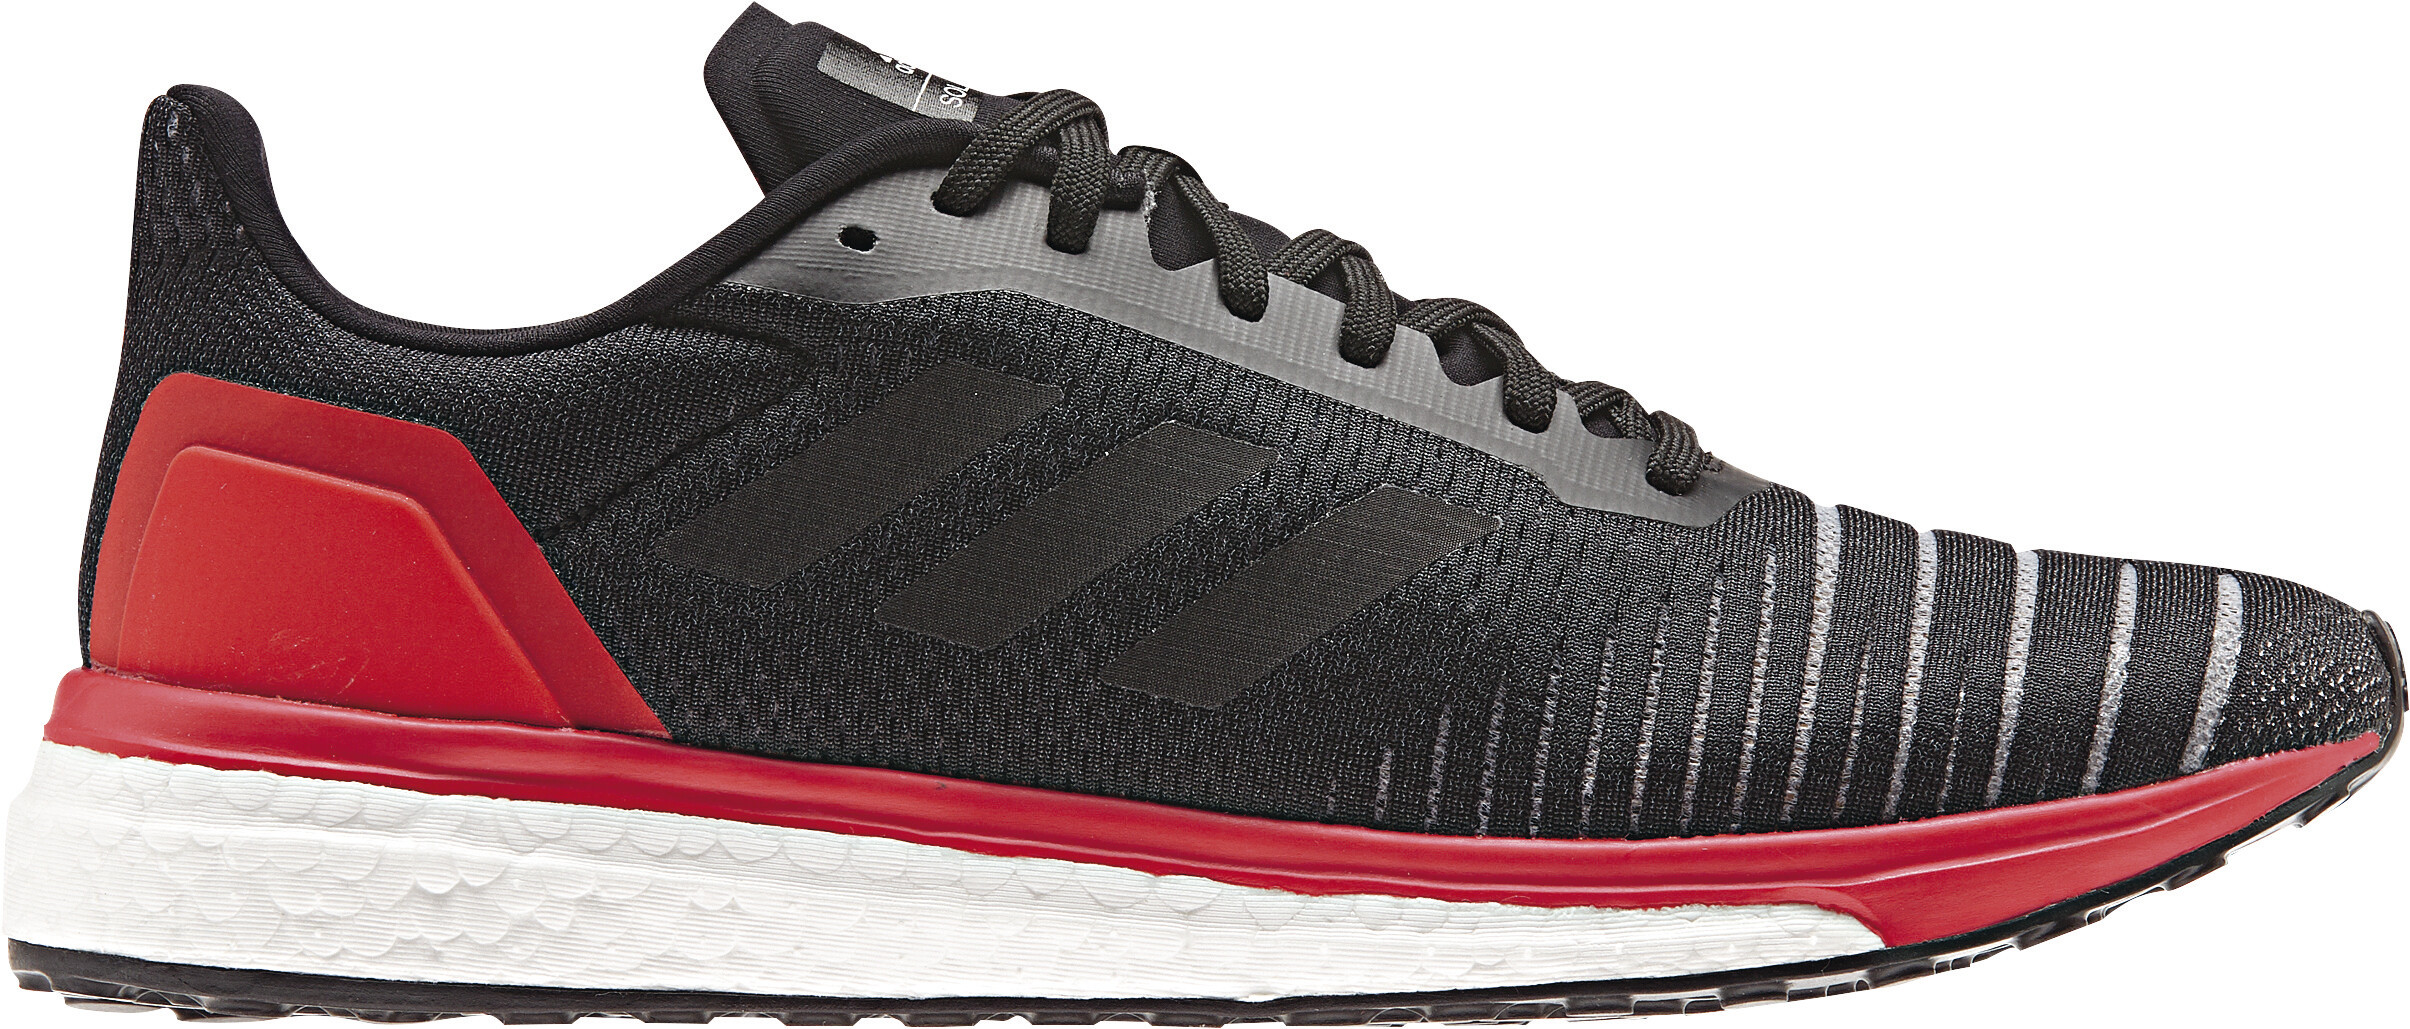 adidas SolarDrive Running Shoes Men red/black at Addnature